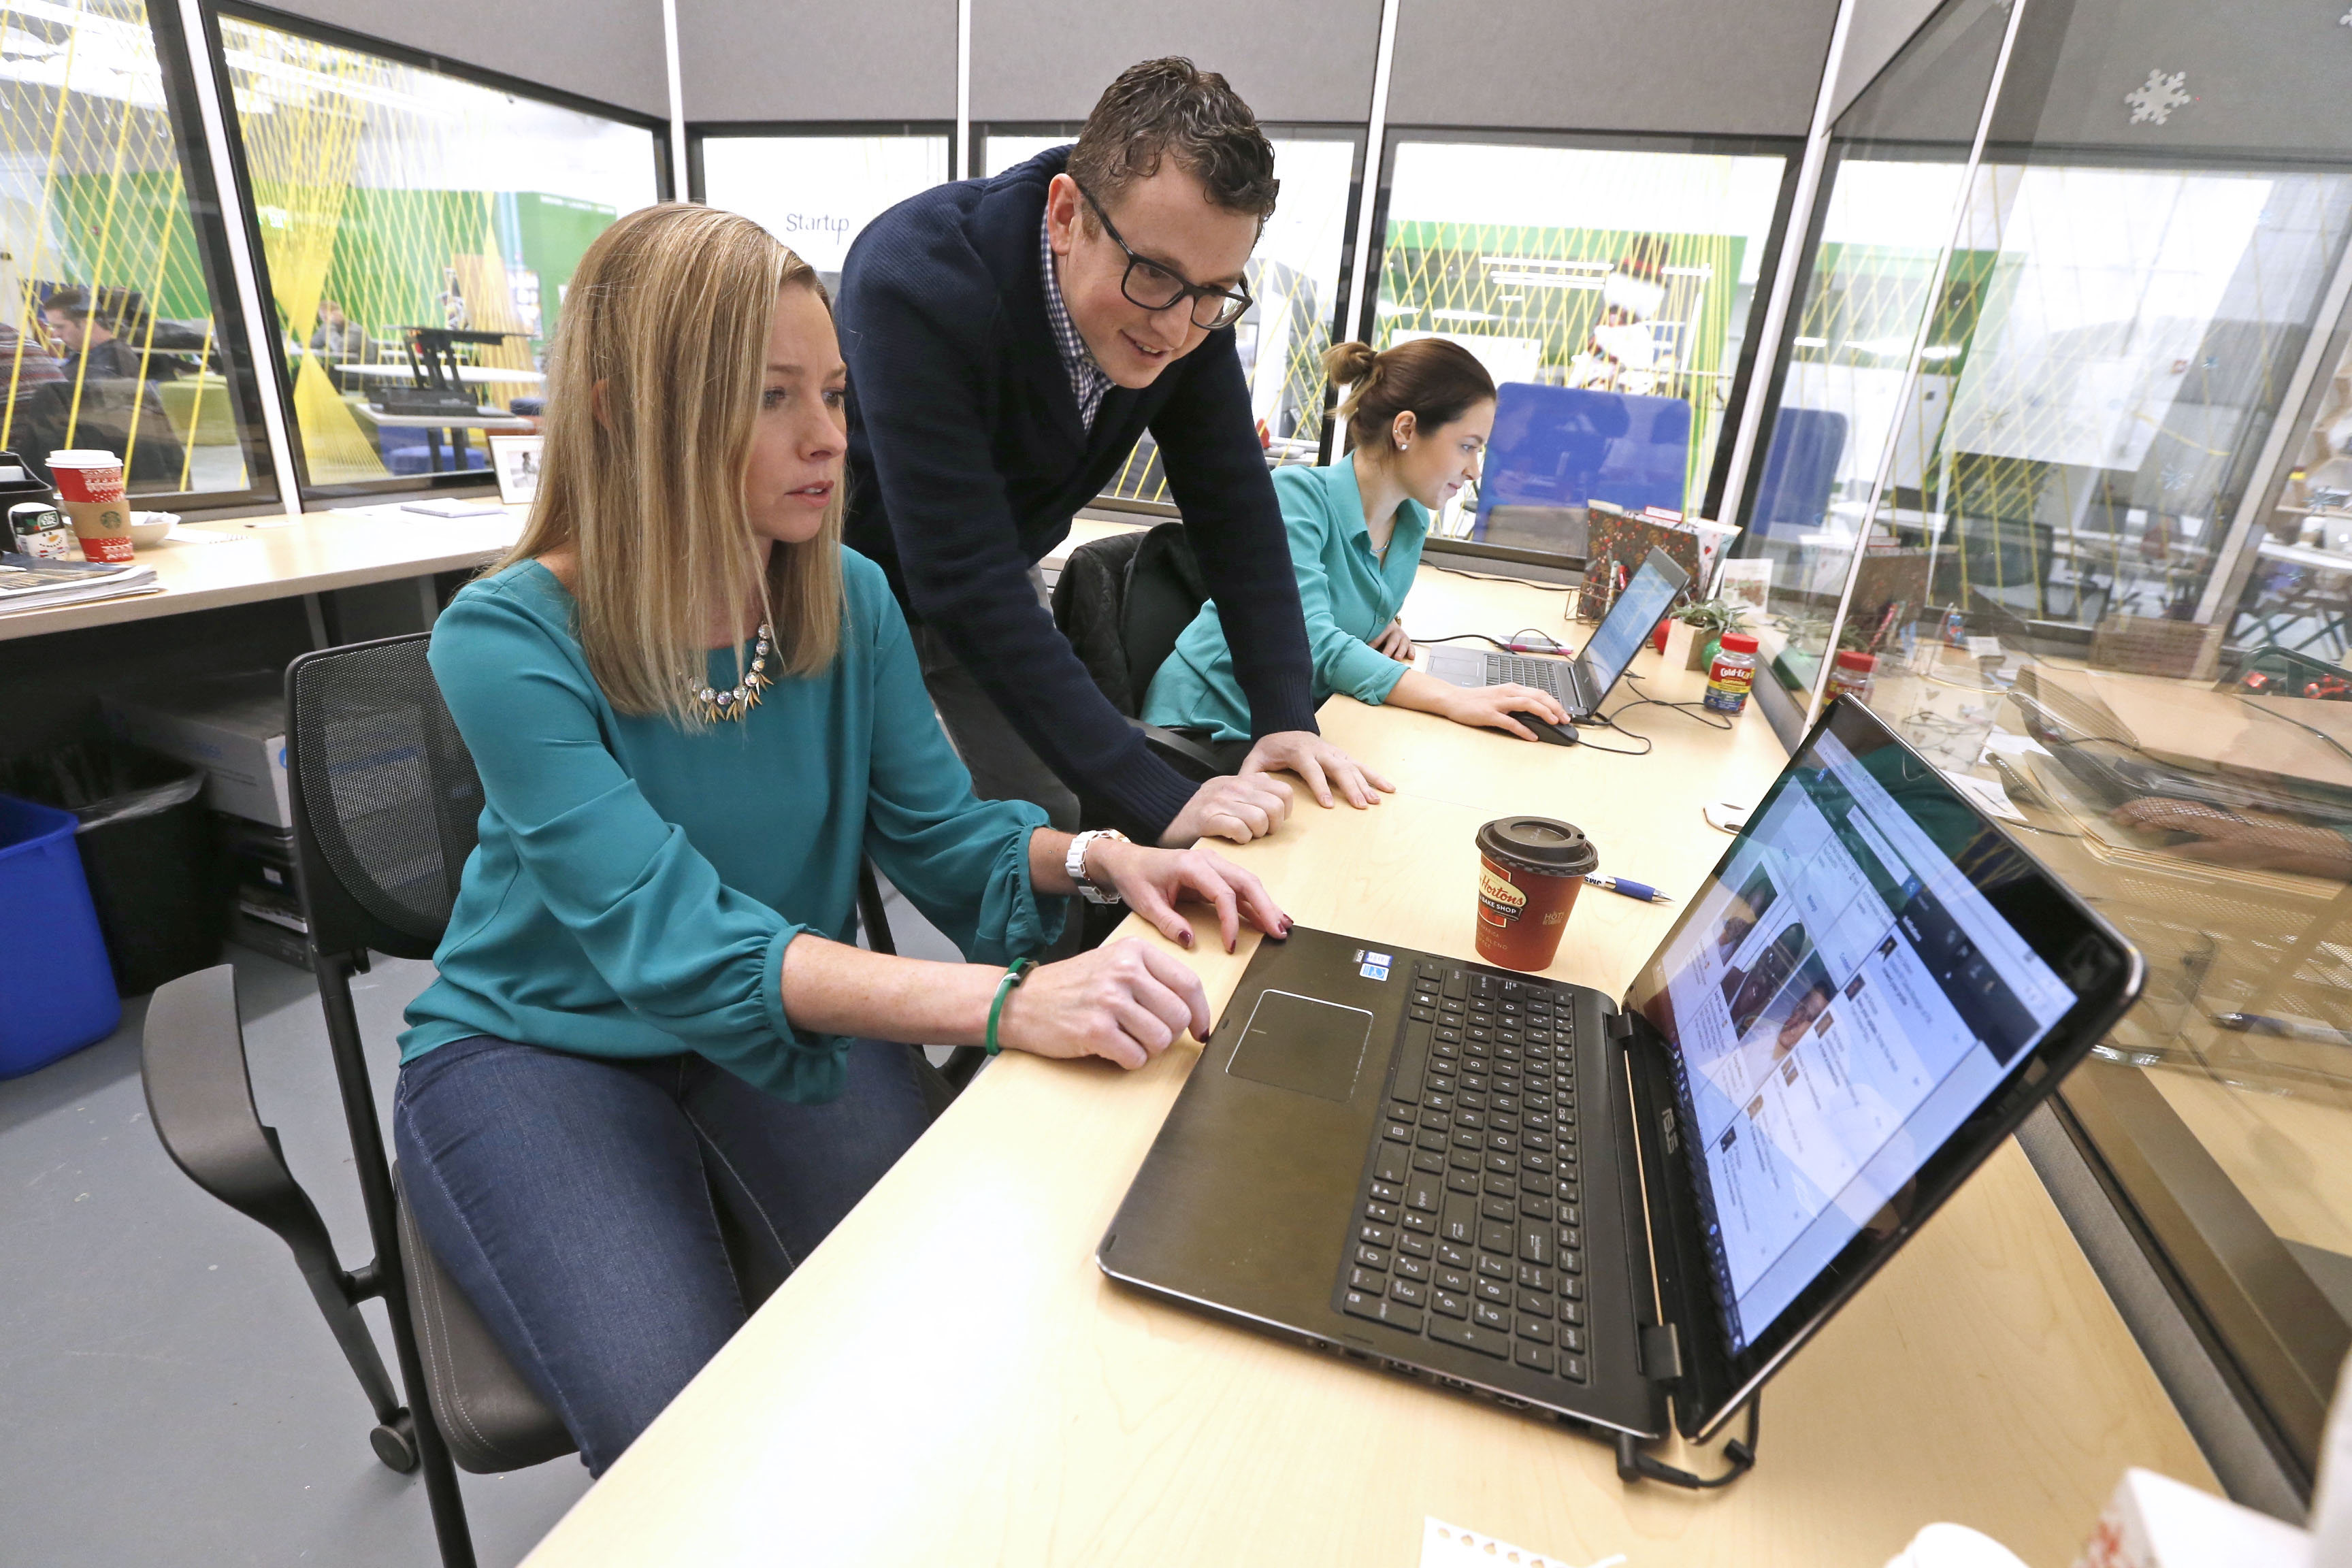 Joel Shapiro, president of JMS Technical Solutions in Buffalo, is constantly searching for qualified candidates at his staffing business. Flanking him are Jennifer Mazurkiewicz, left, director of business development, and Chelsea Robinson, a recruiter. (Robert Kirkham/Buffalo News)